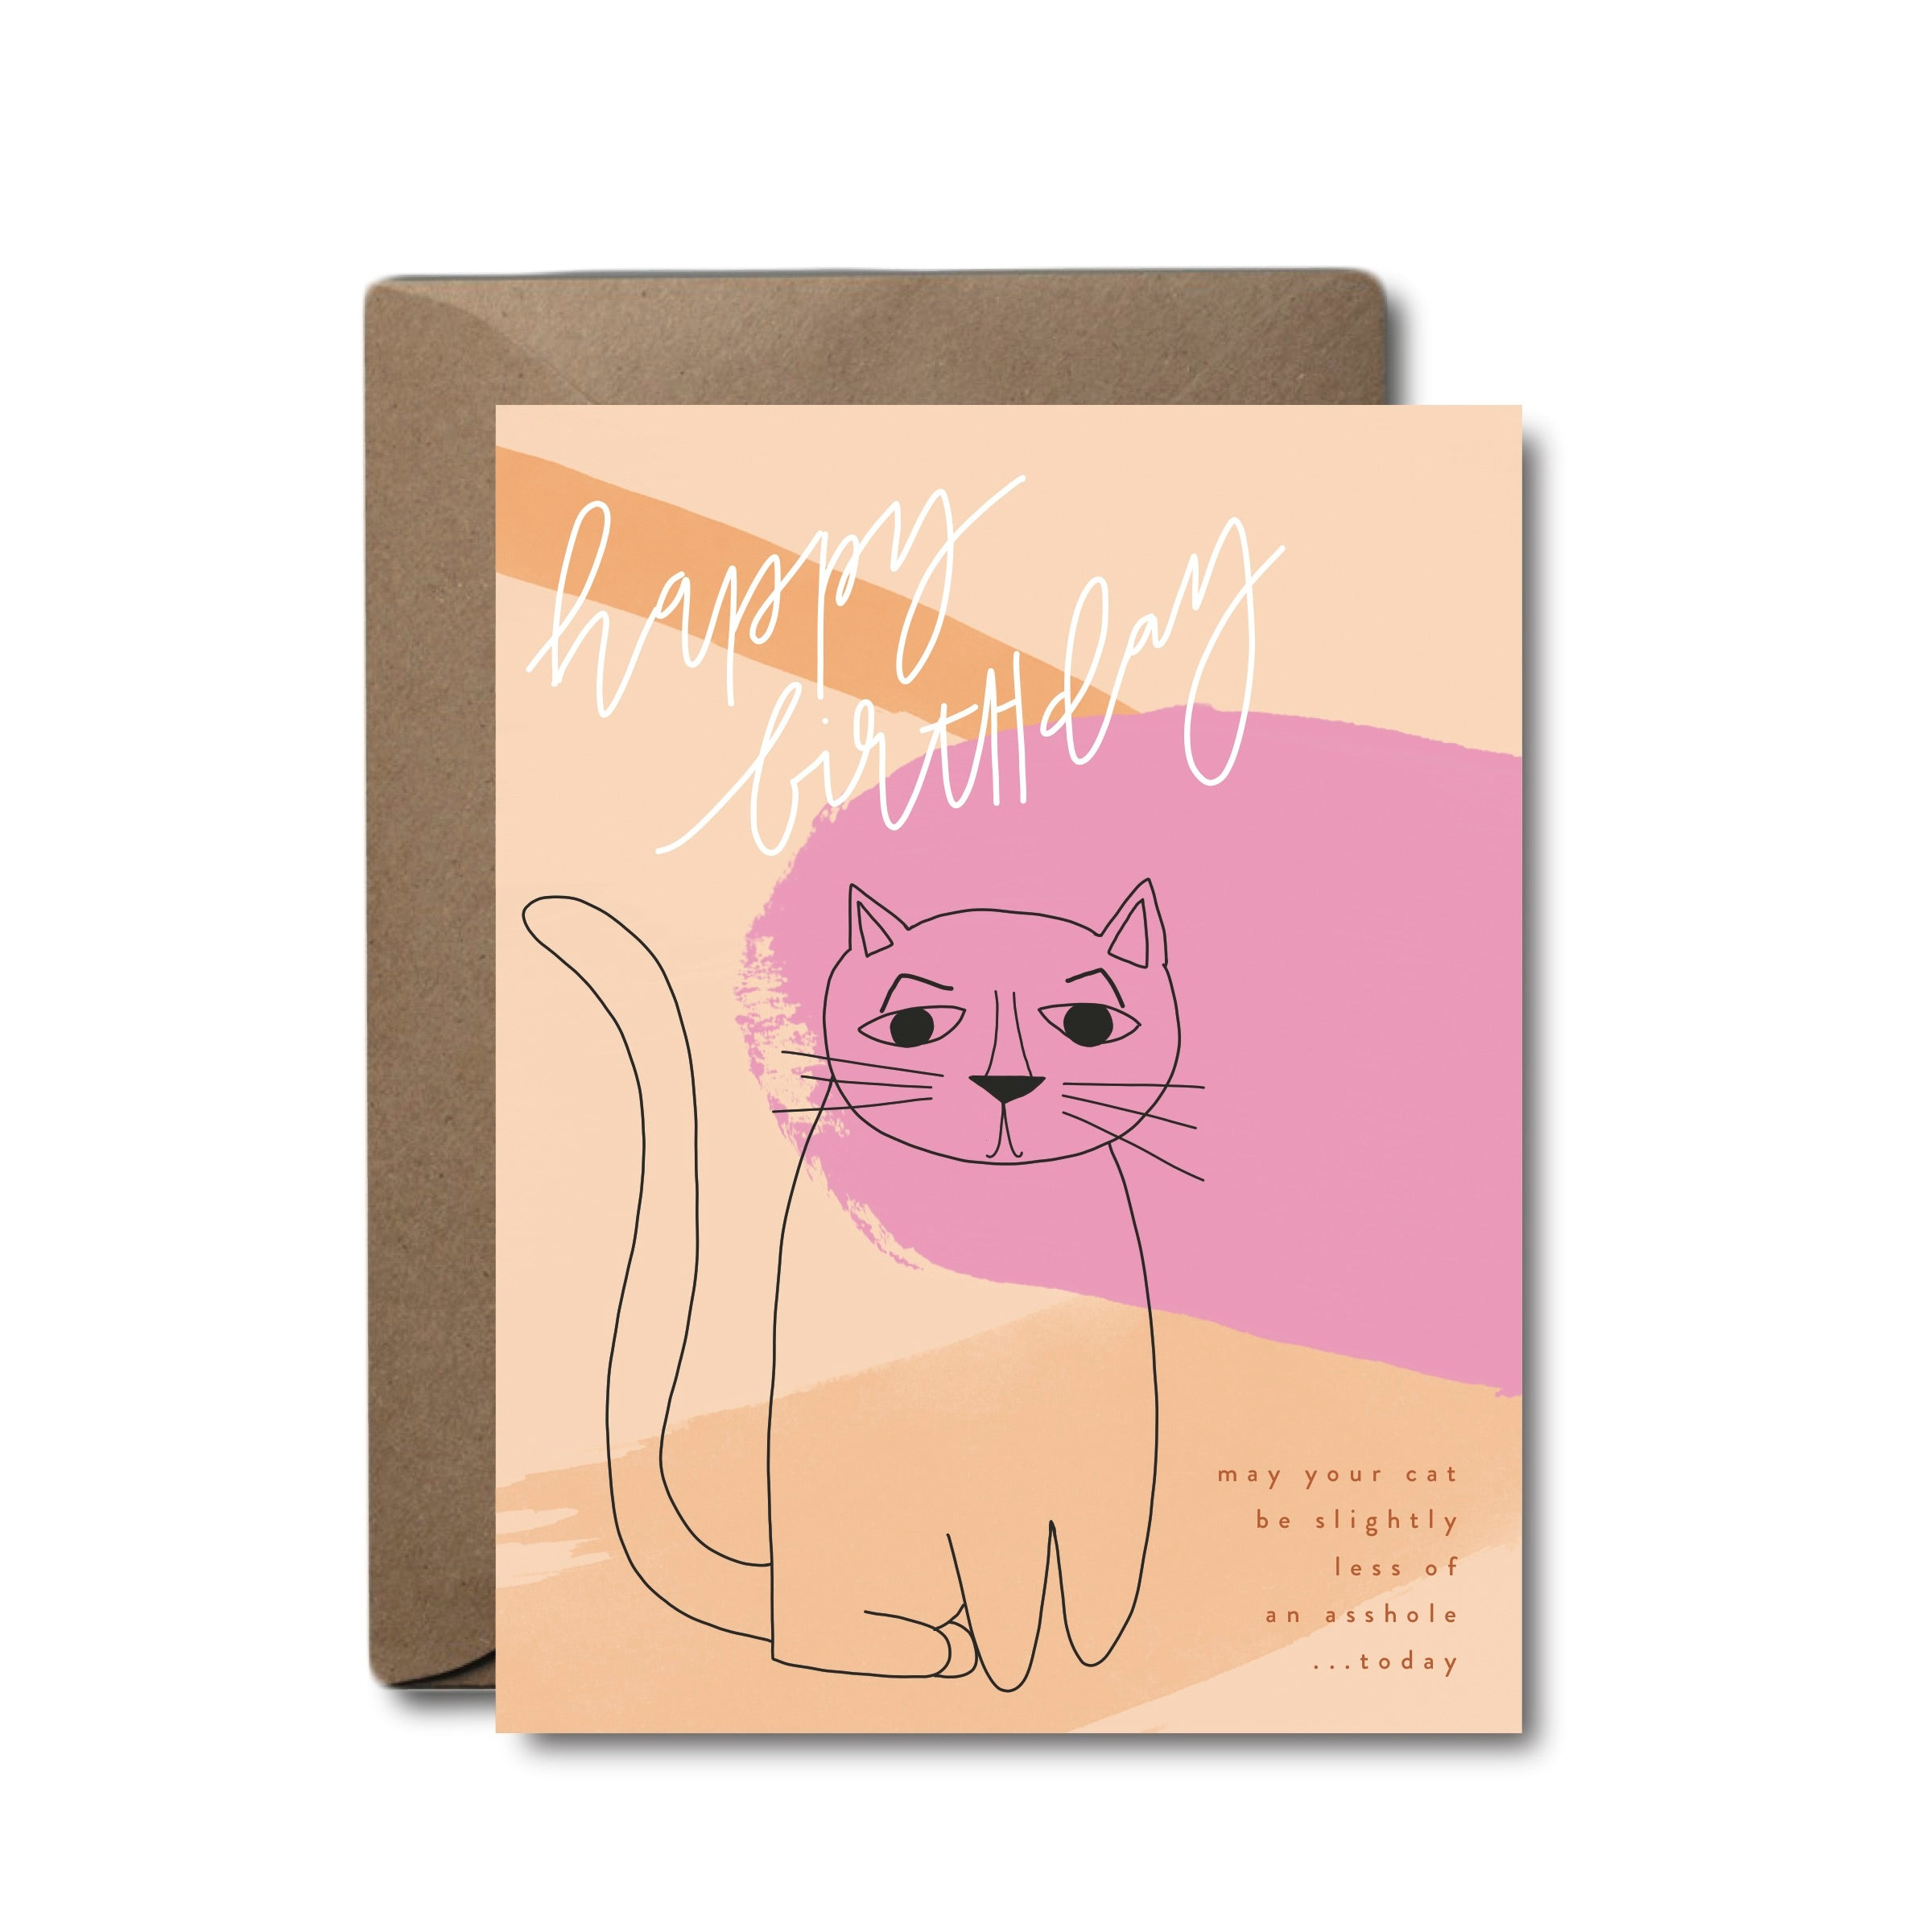 Asshole Cat Birthday Card - Salix Intimates